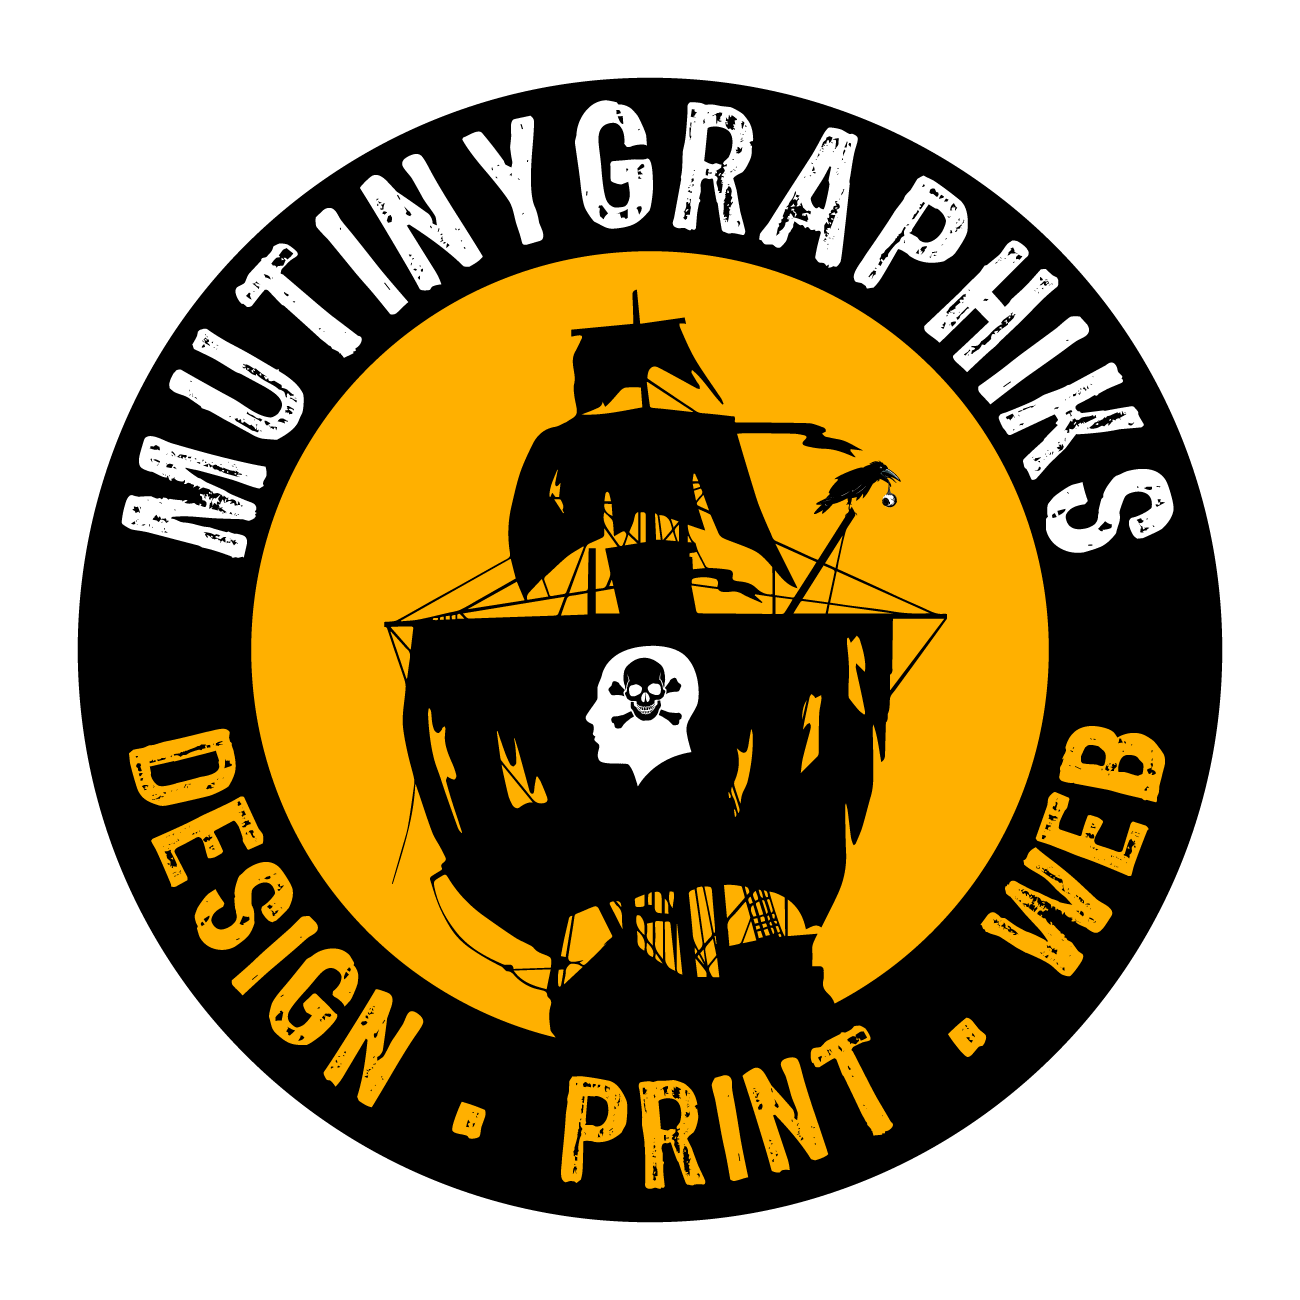 Mutinygraphiks | Web & Graphic Design | Las Vegas, NV